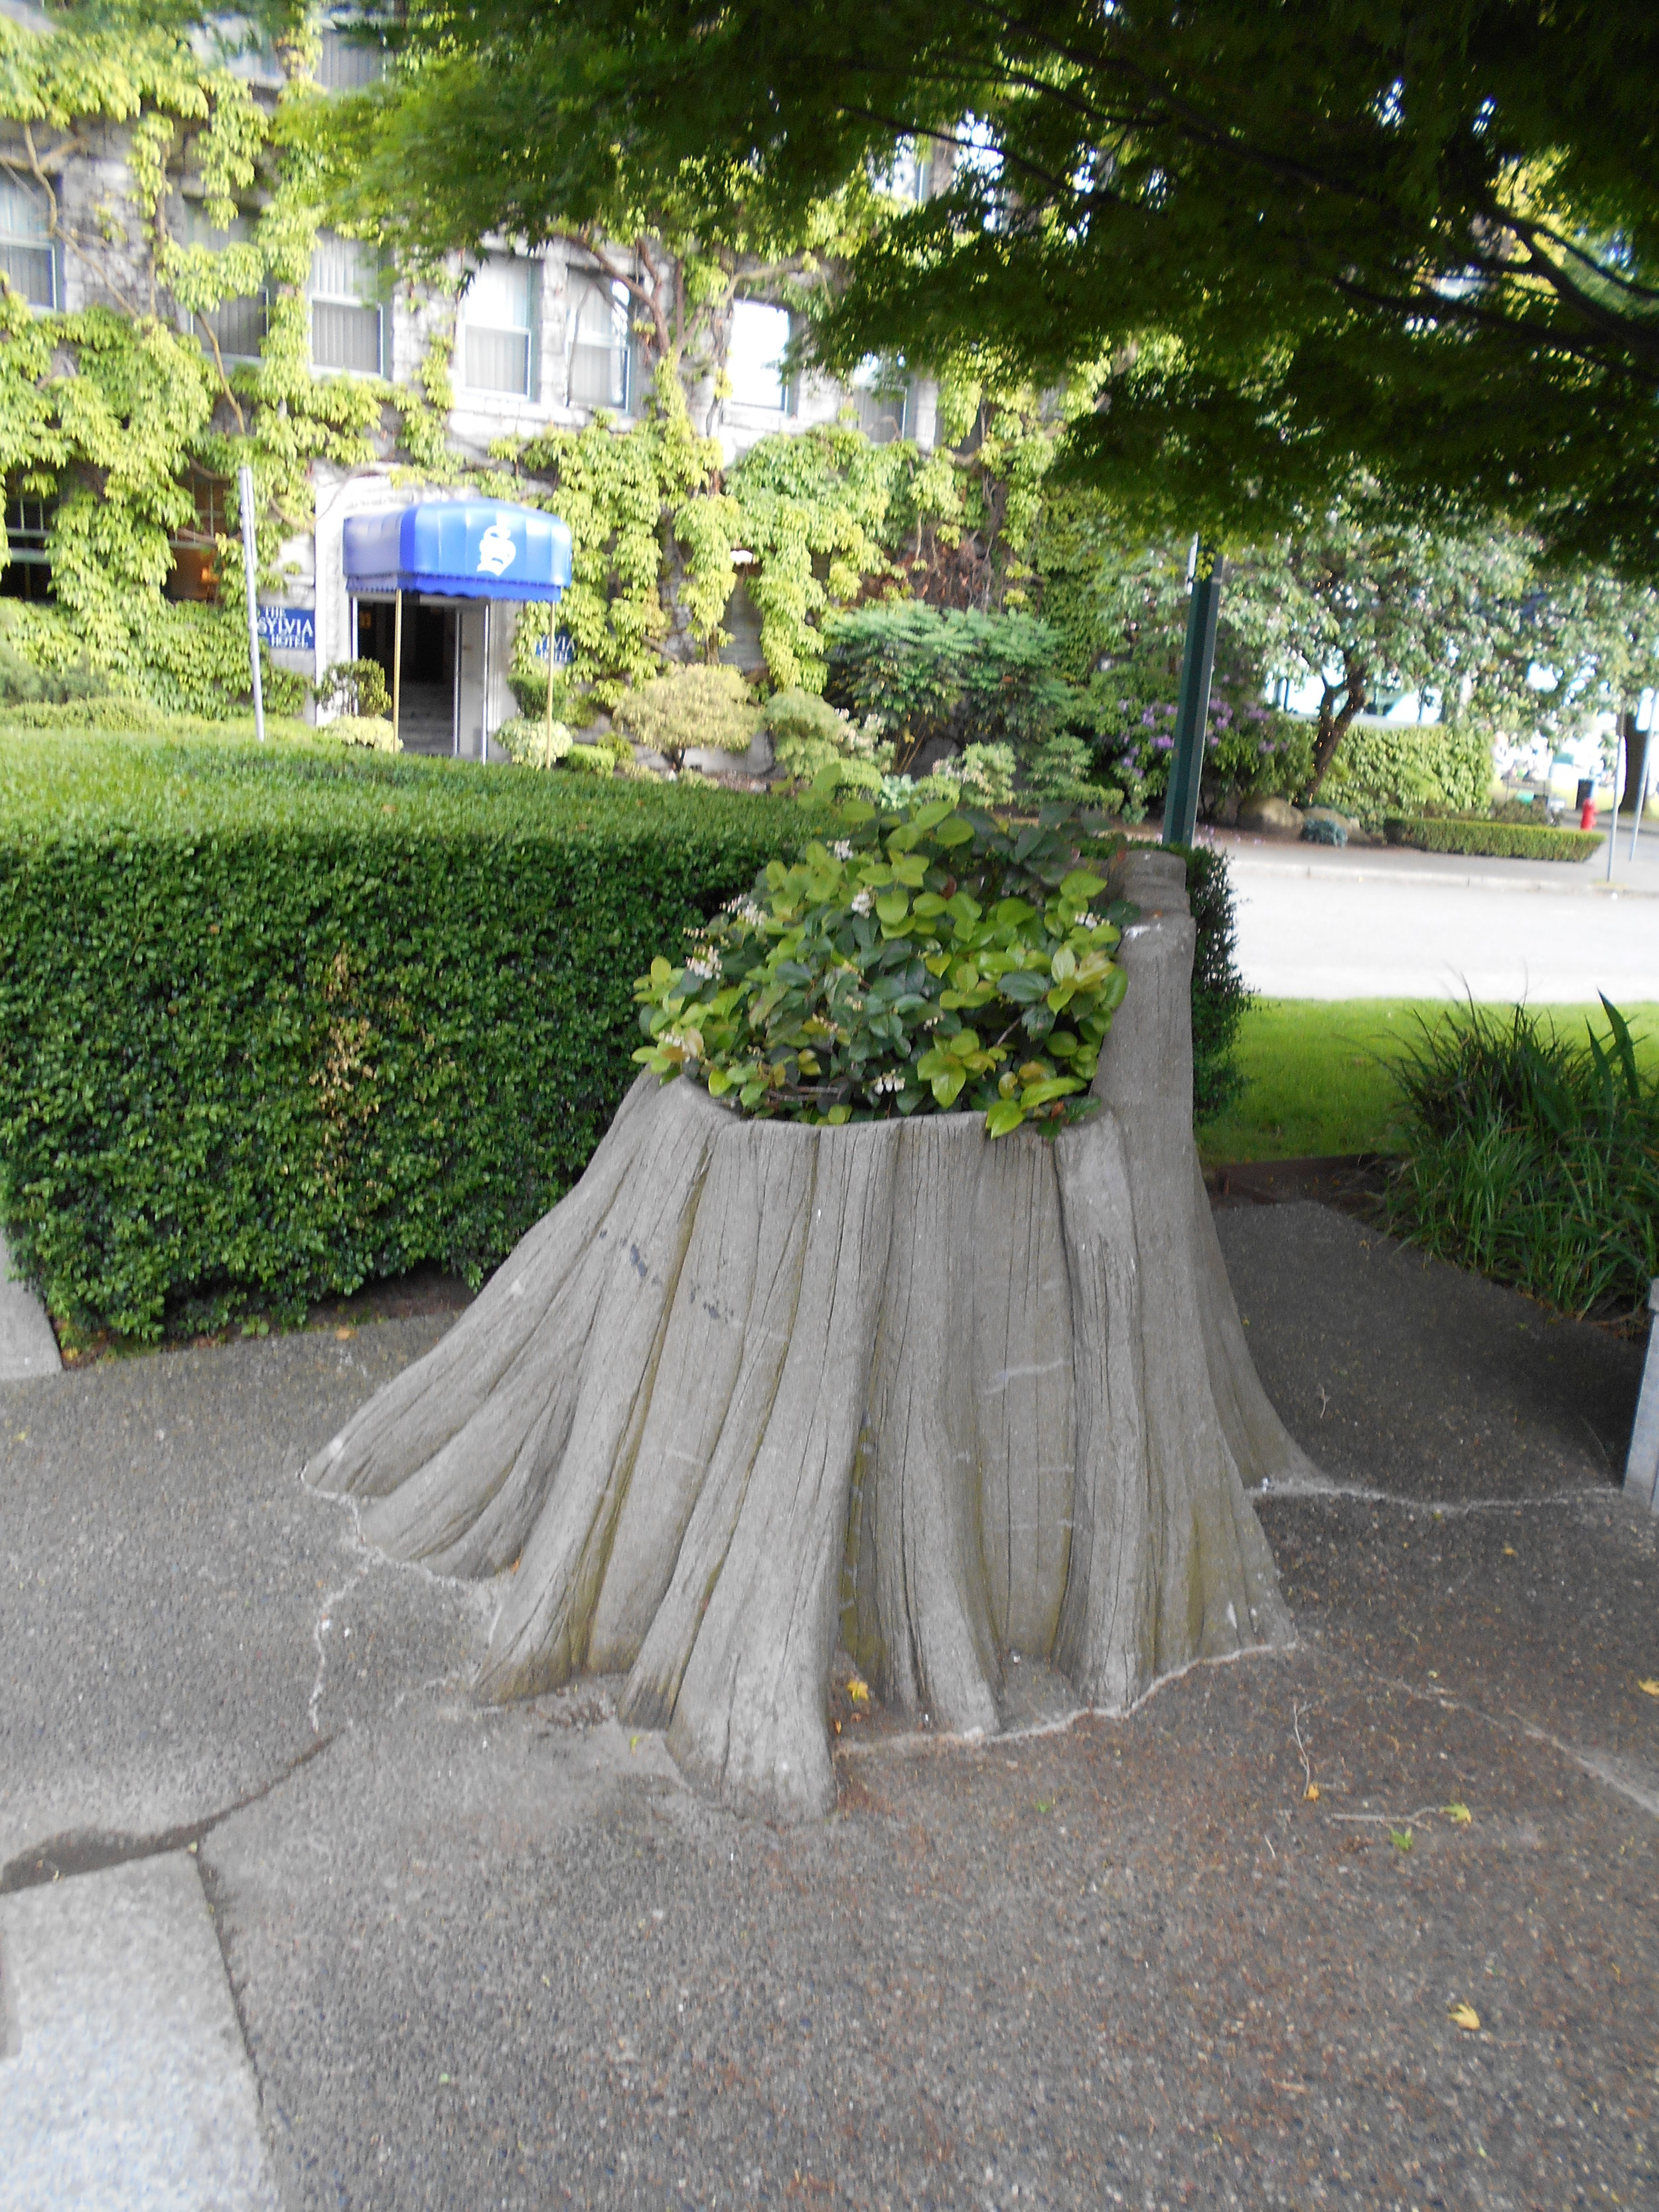 Concrete and floral homage to bygone forest giants?